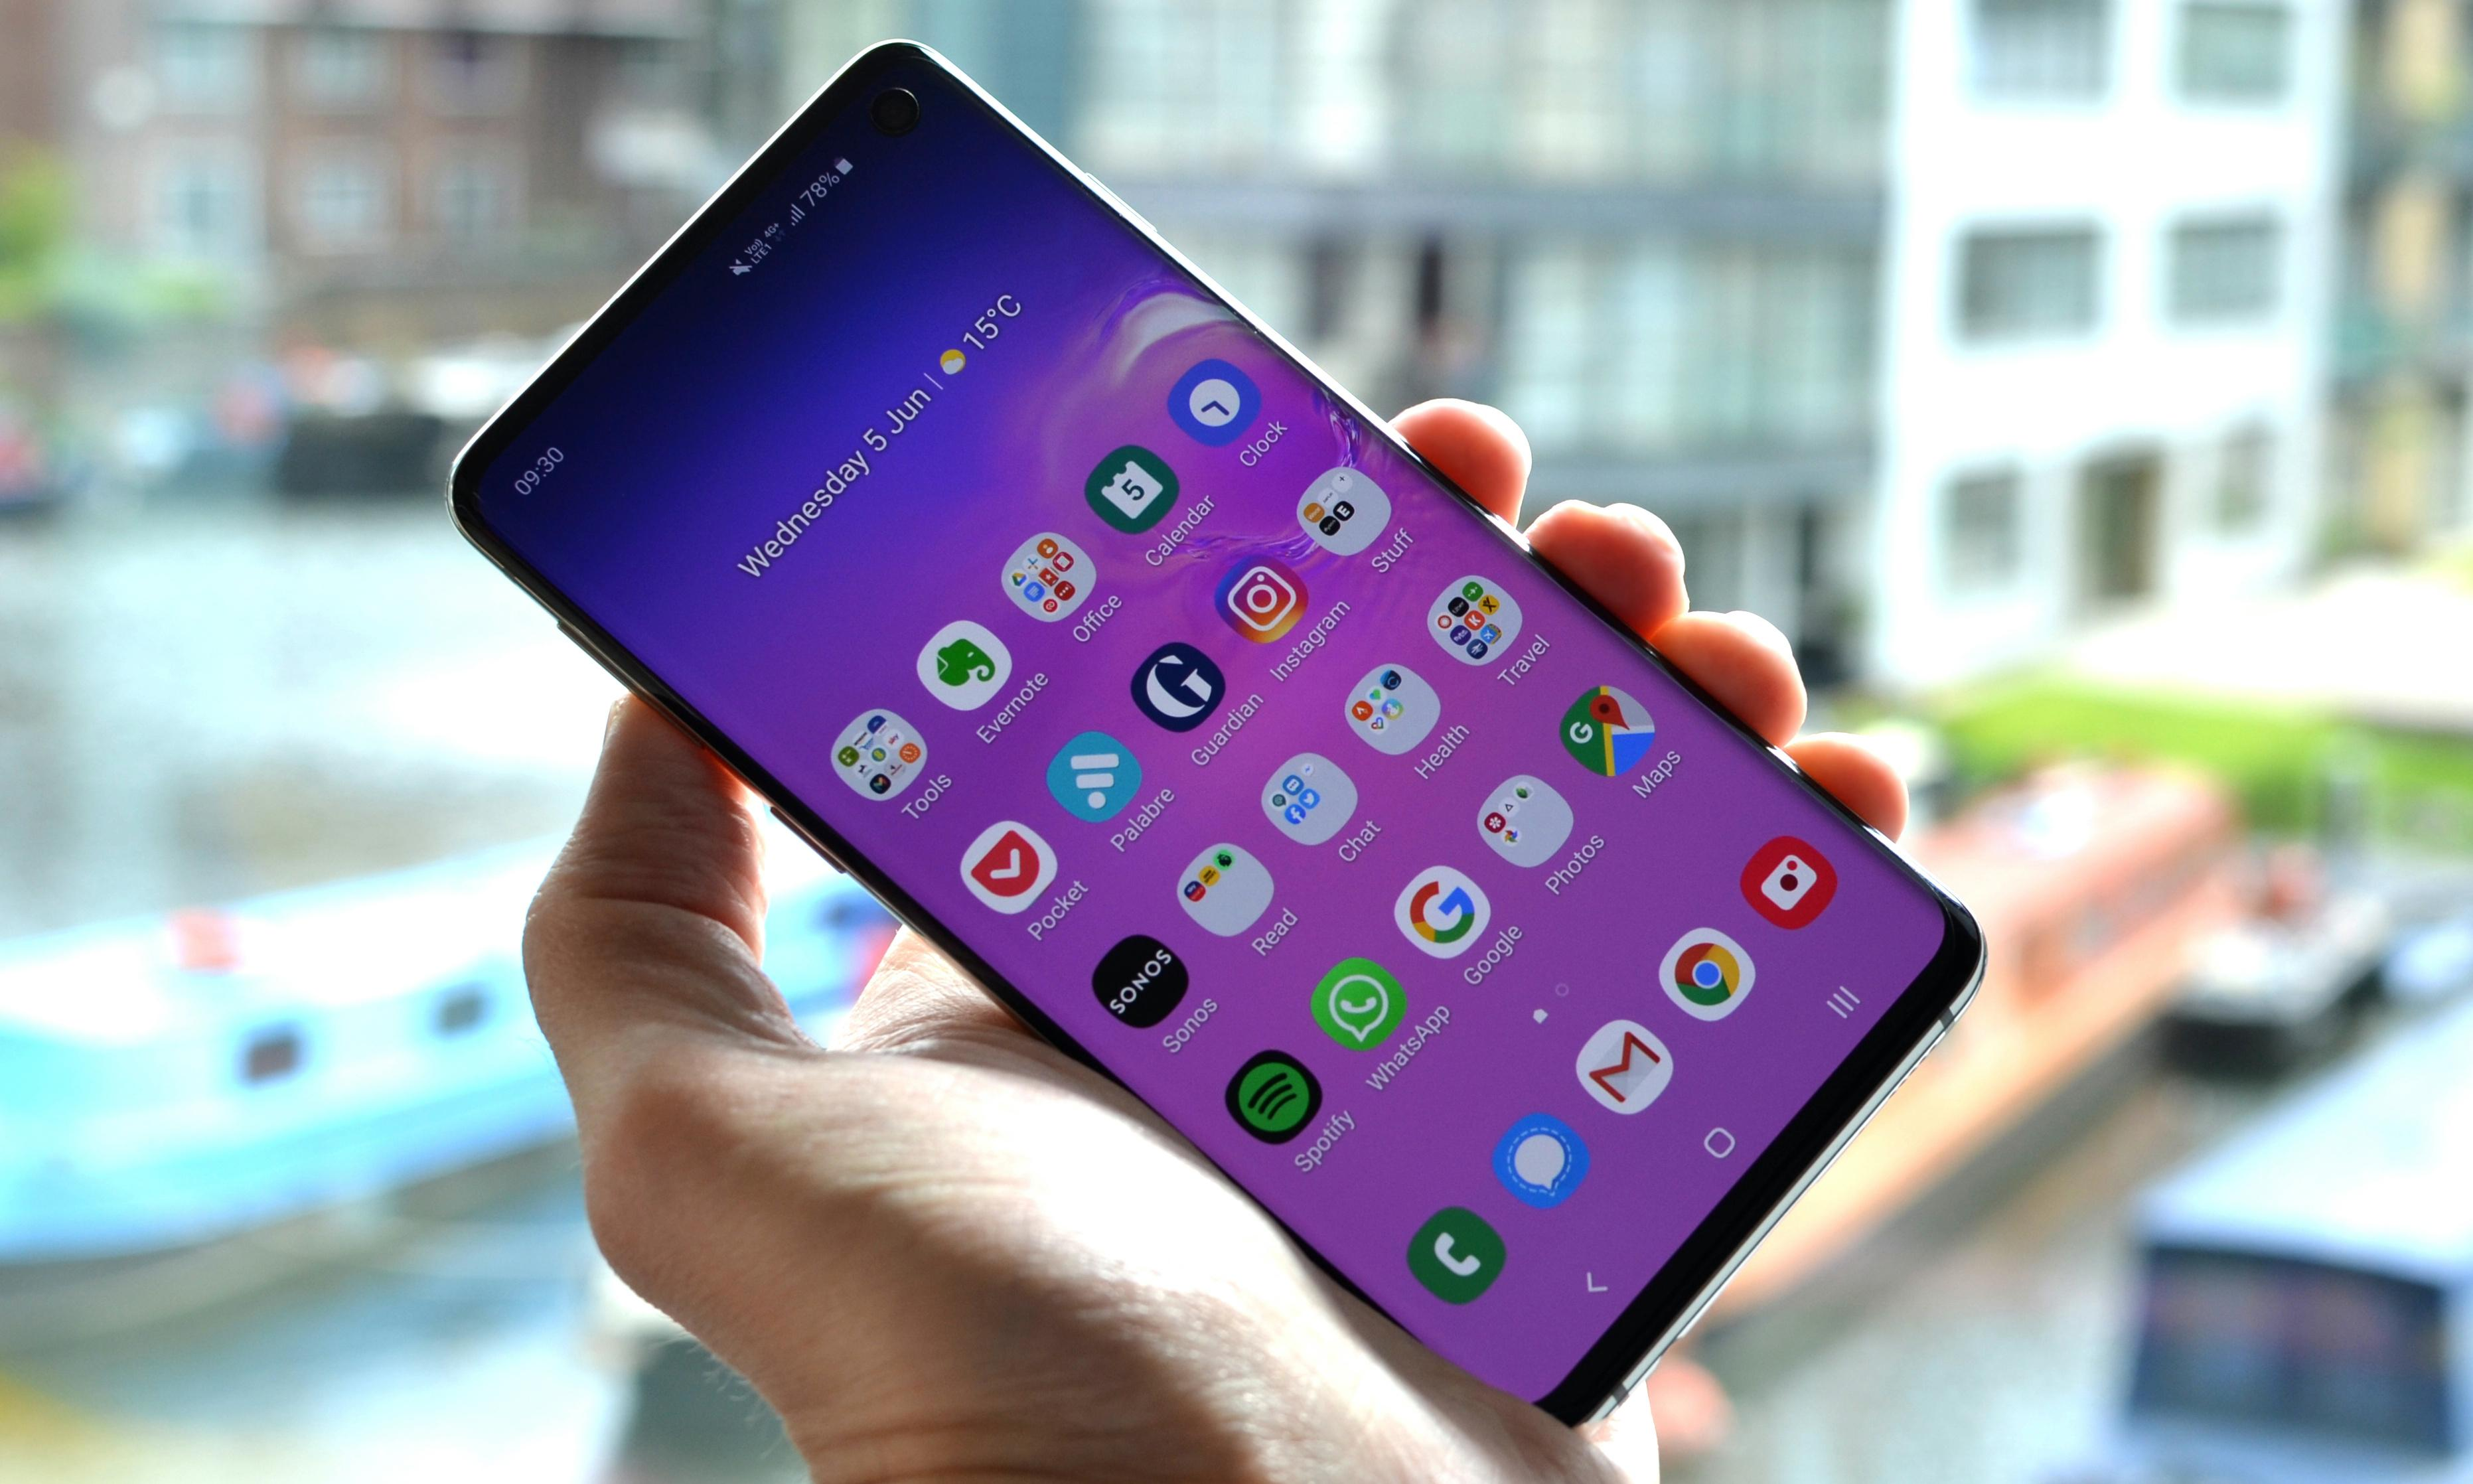 Samsung Galaxy S10 review: the sweet spot